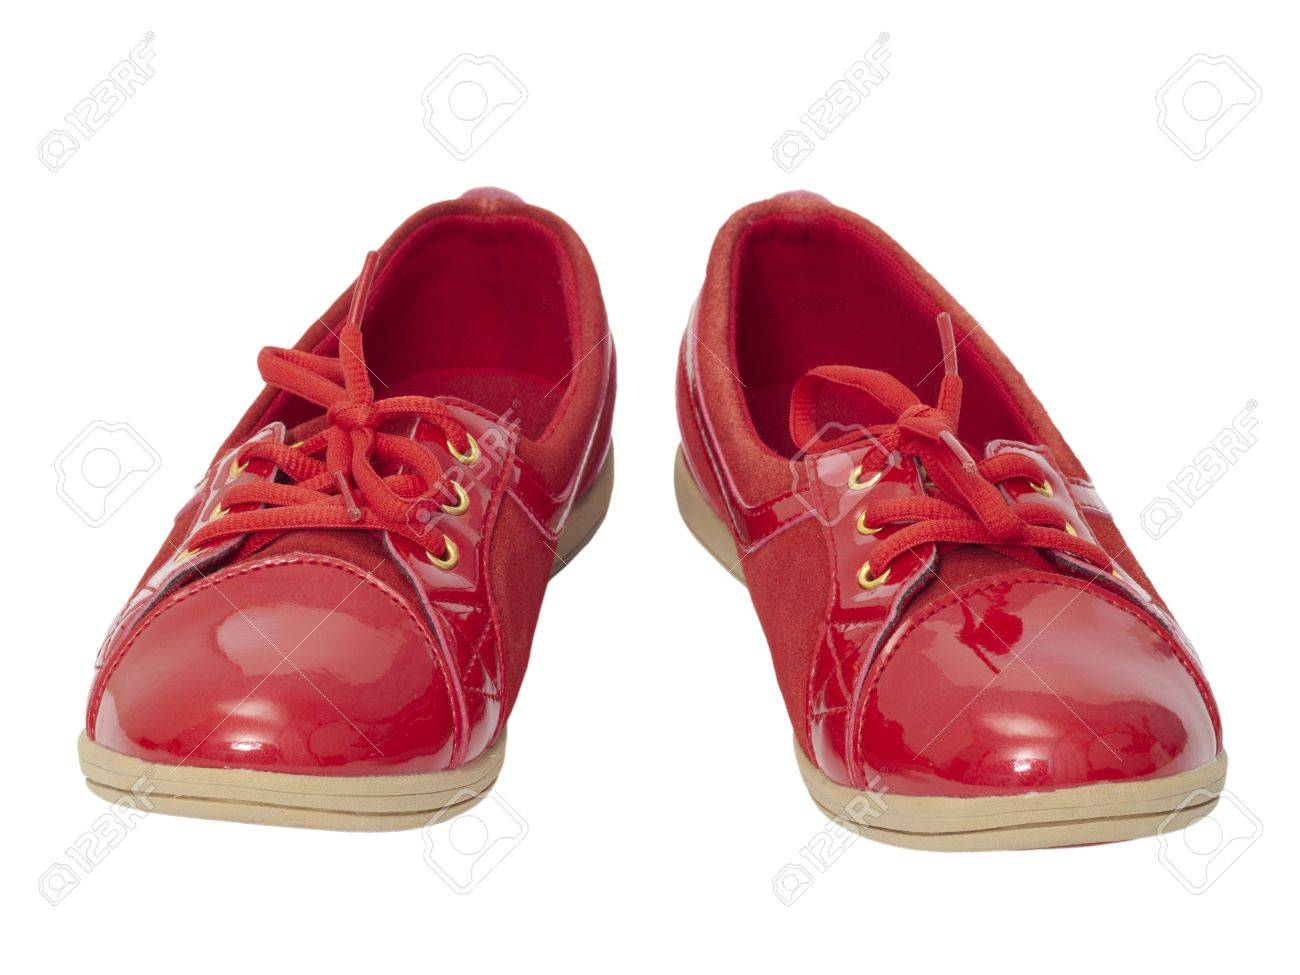 Red Shiny Shoes On White Background. Stock Photo, Picture And ...